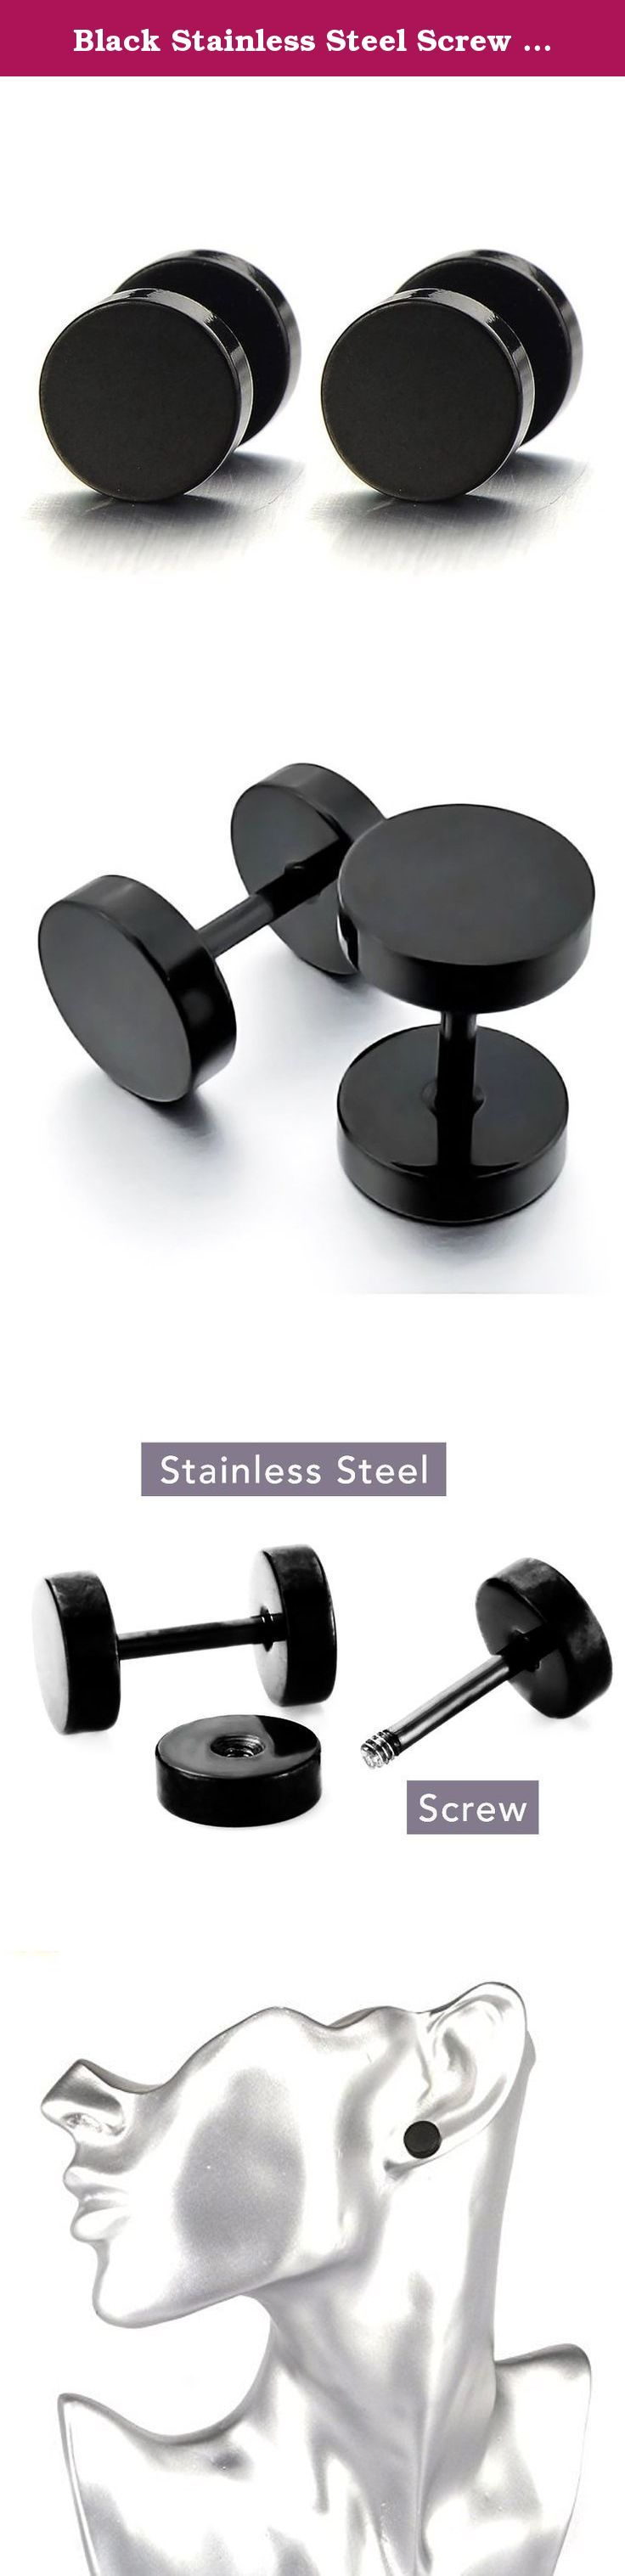 Black Stainless Steel Screw Stud Round Earring Gift for Men Boy (2pcs, 12mm). *Condition: 100% brand new *Material: Stainless Steel *Color: Black *Finishing: Polished *Dimension: 12MM.